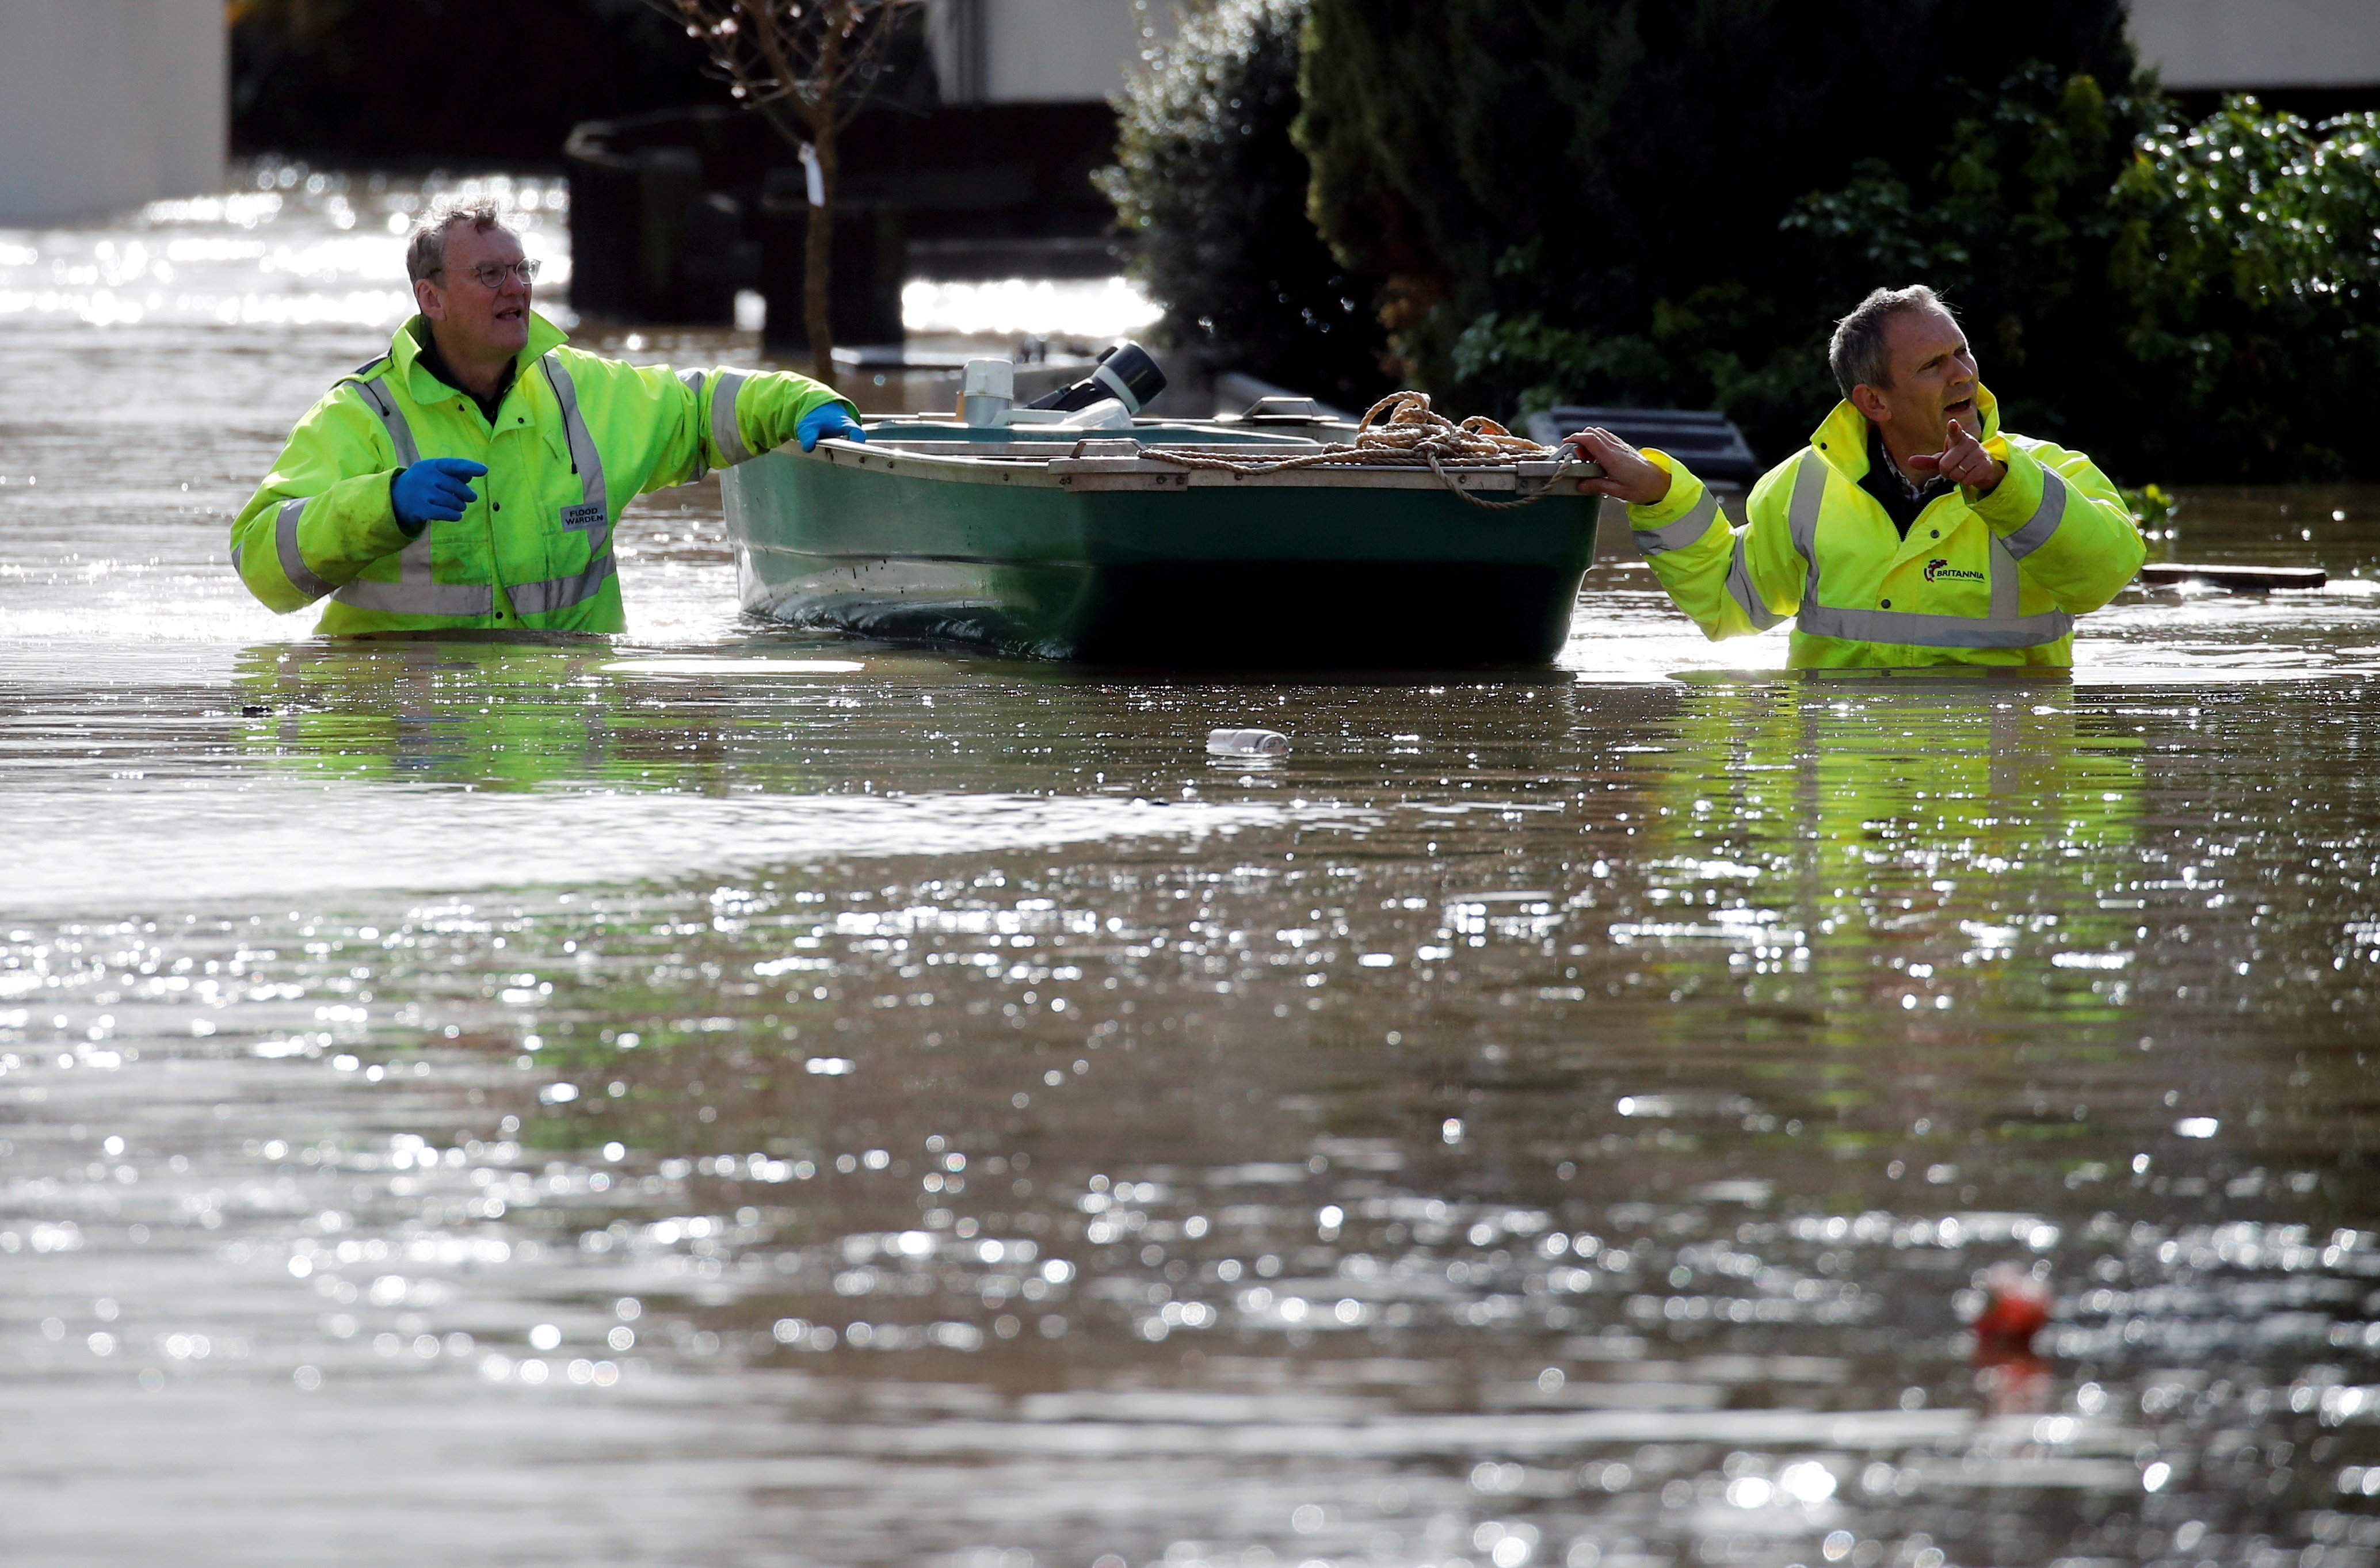 Emergency personnel wade through water in a flooded street after Storm Dennis in Hereford, Britain, February 17, 2020. (REUTERS Photo)